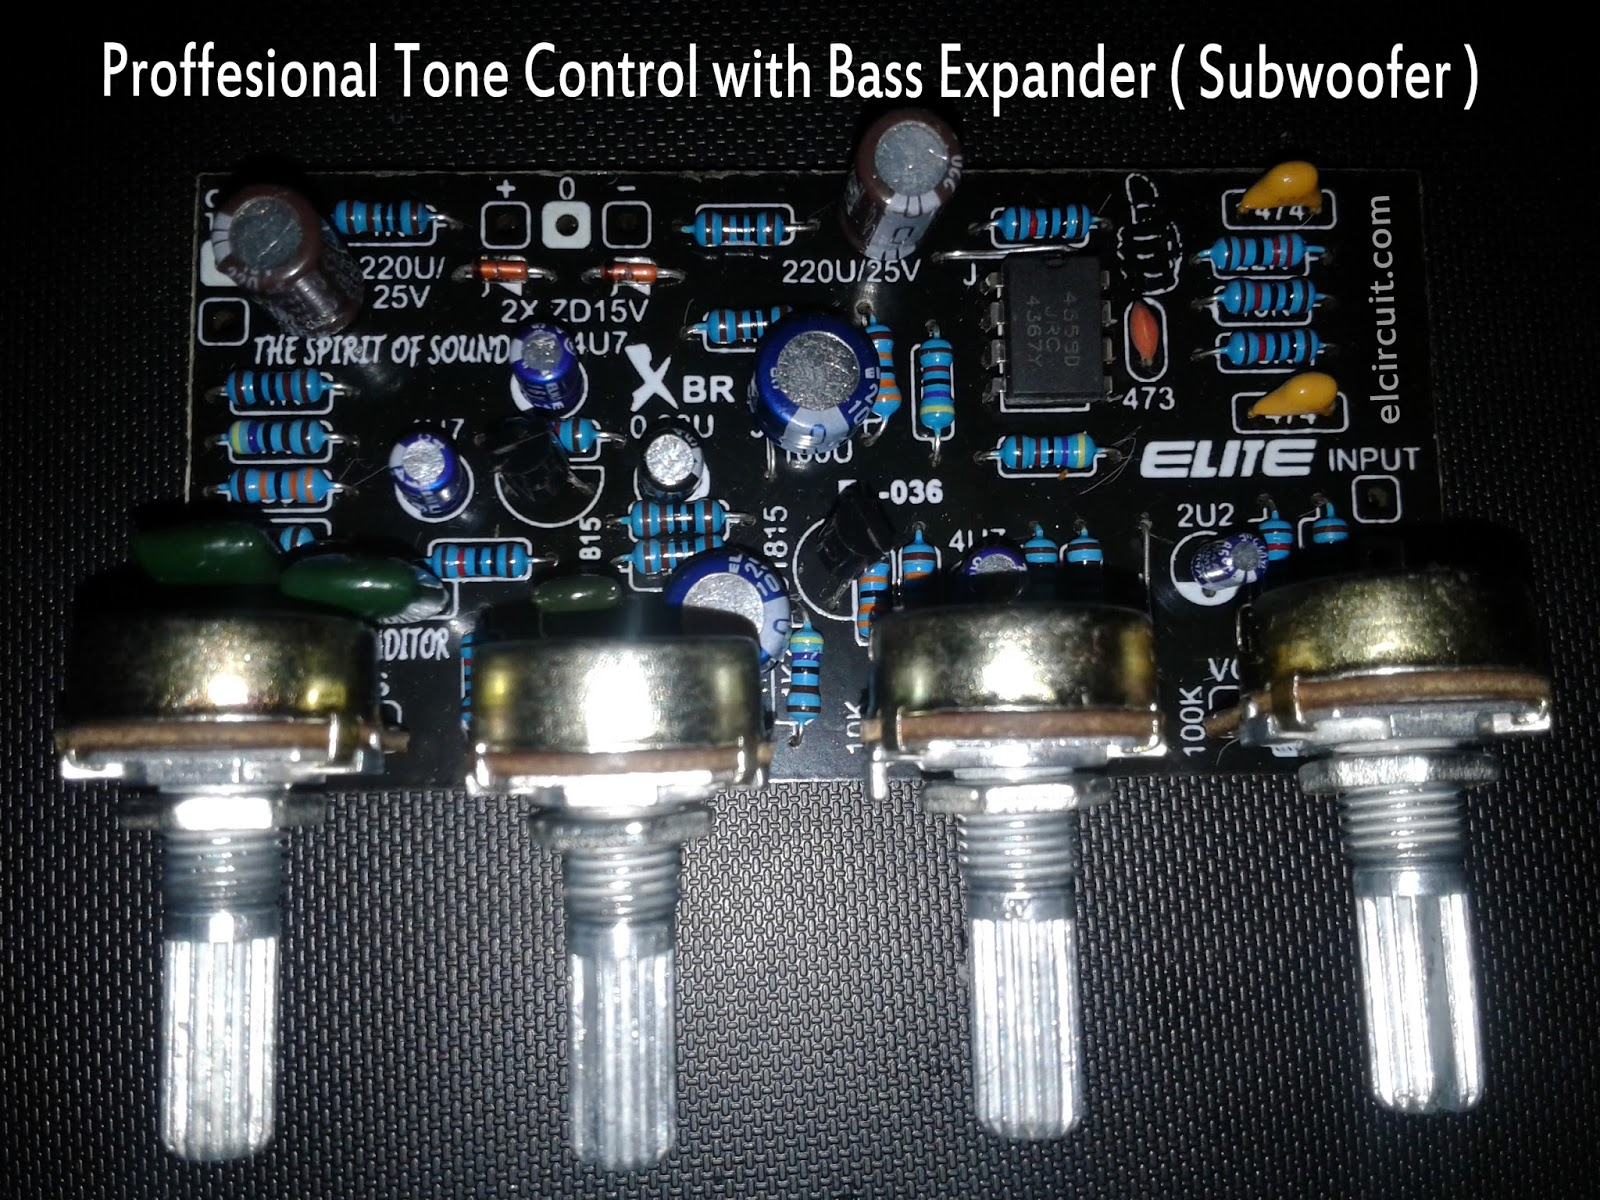 Professional Tone Control Mono Bass Expander and Subwoofer ...